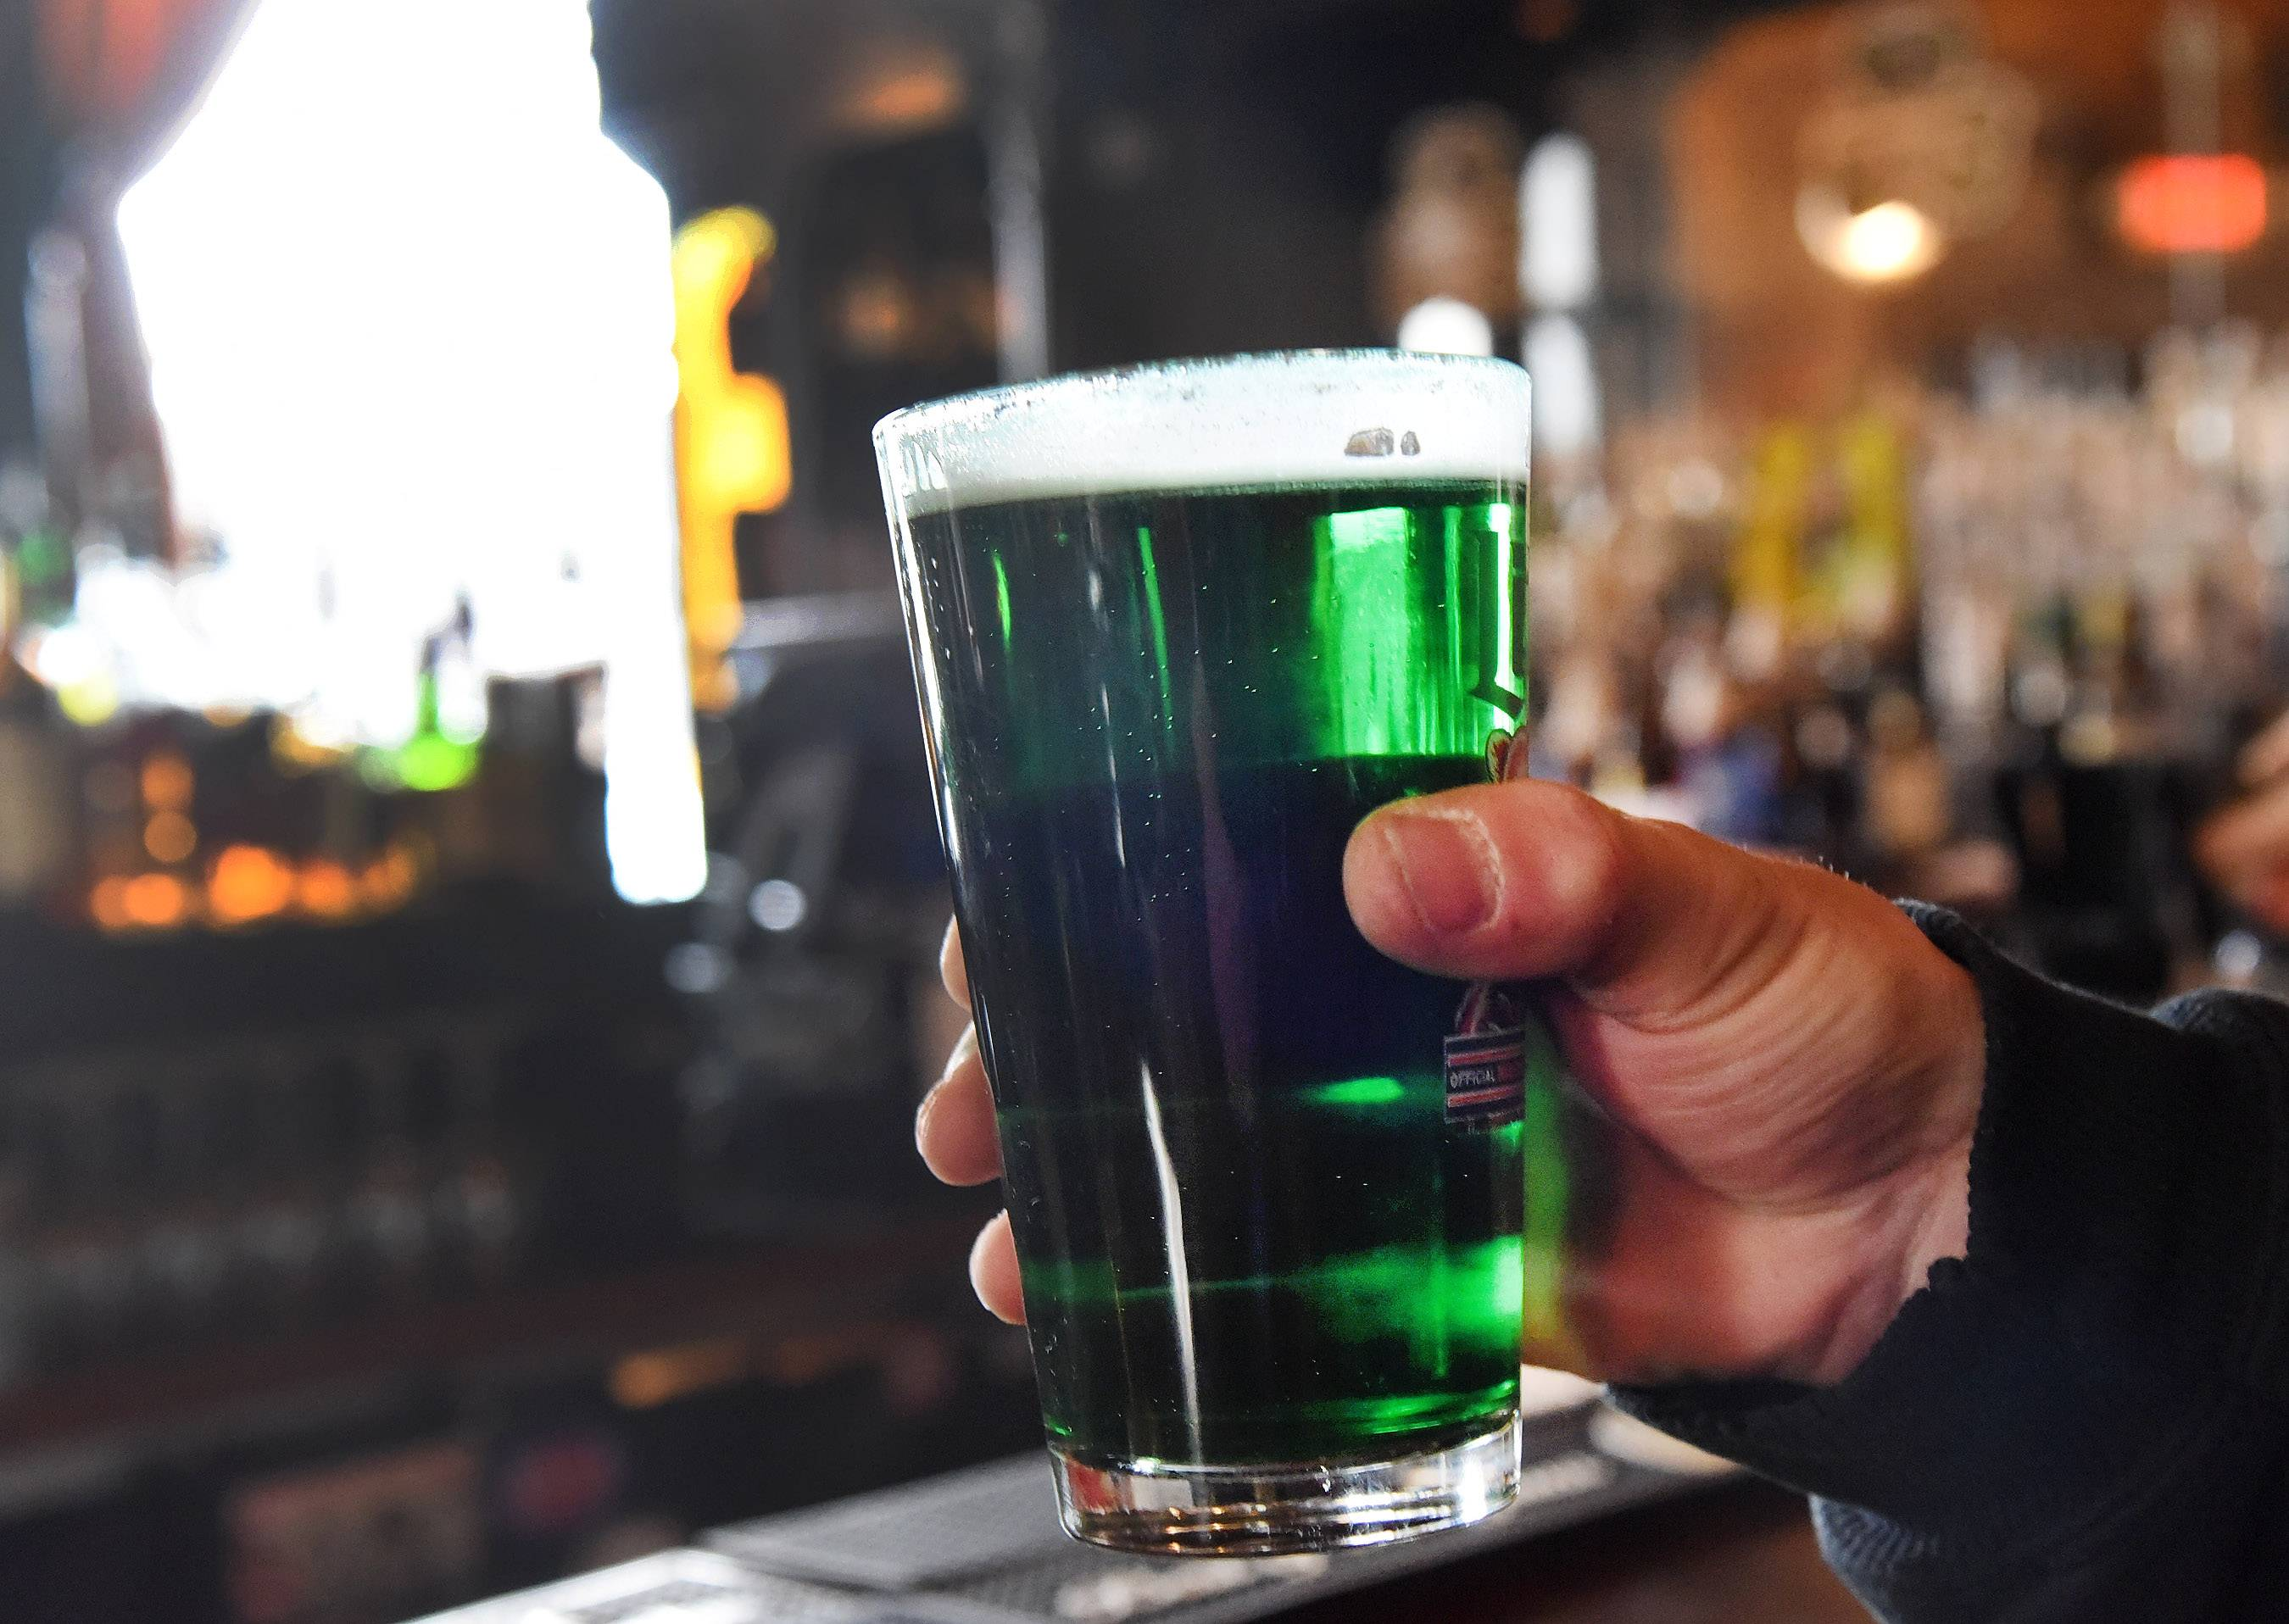 Toast to St. Patrick's Day at McGonigal's Pub in Barrington.